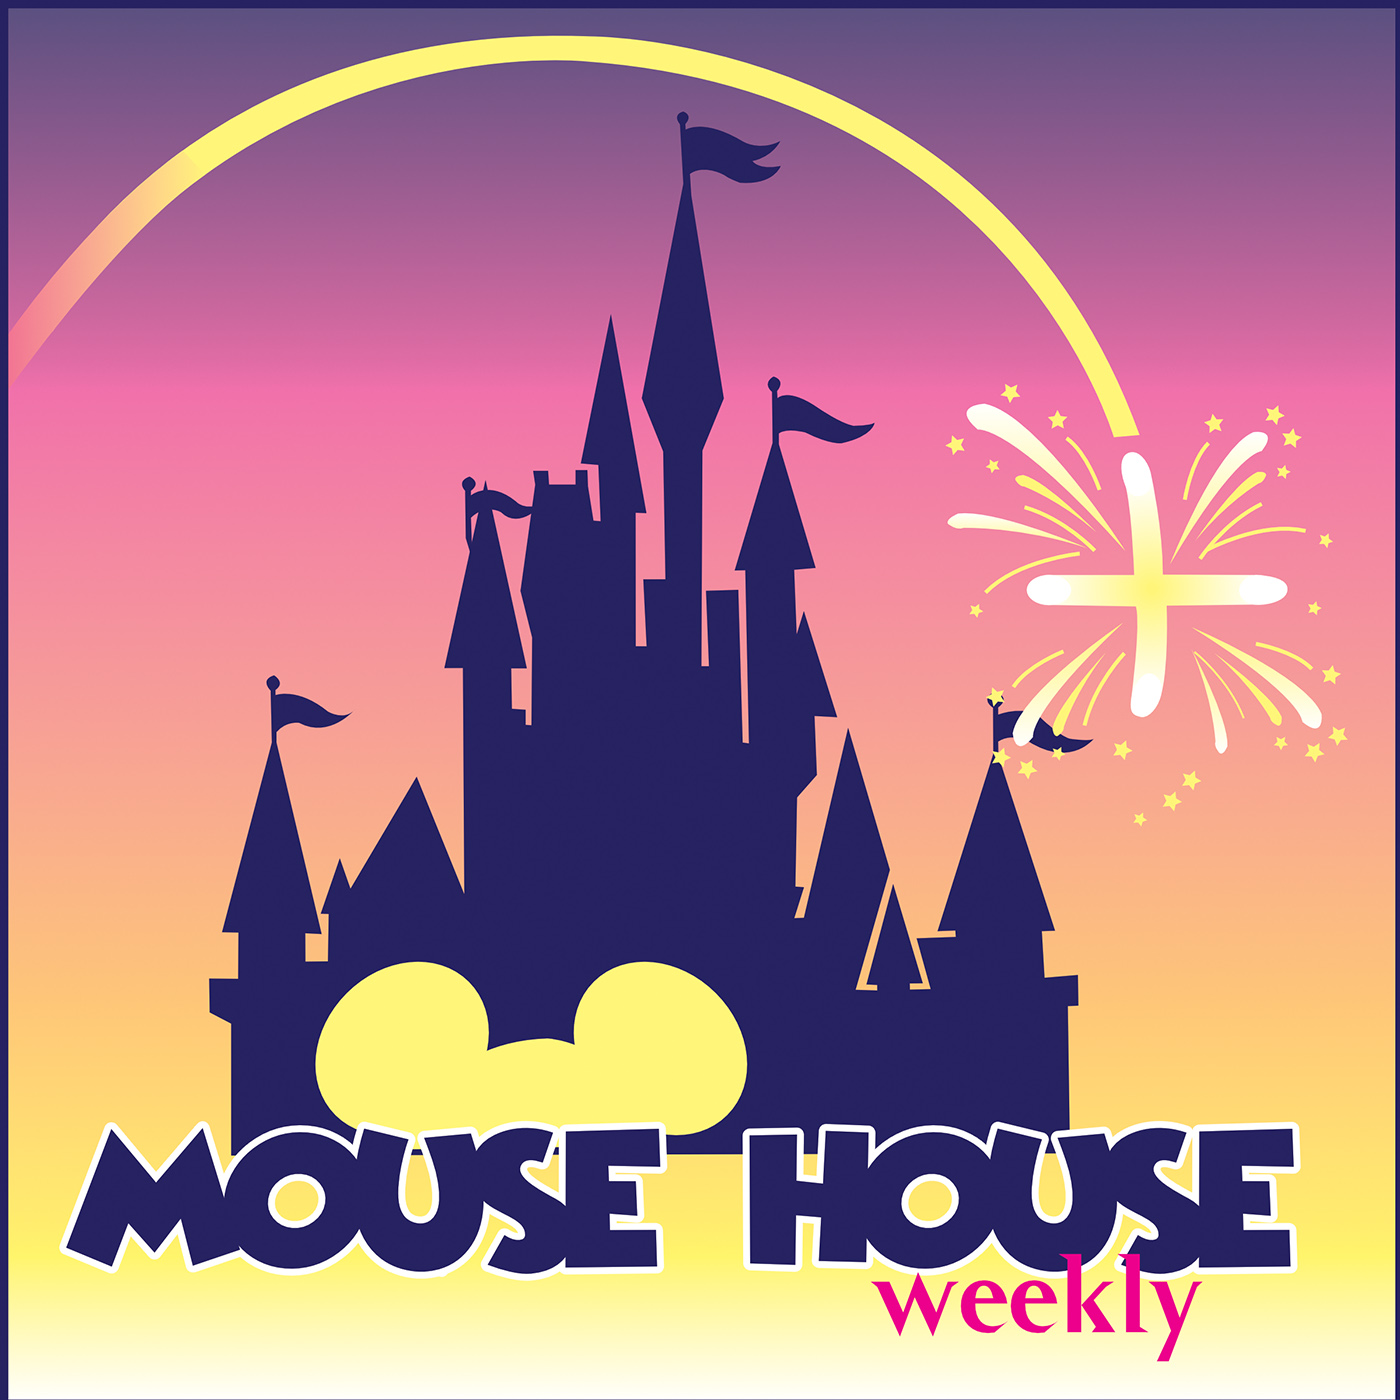 Mouse House Weekly